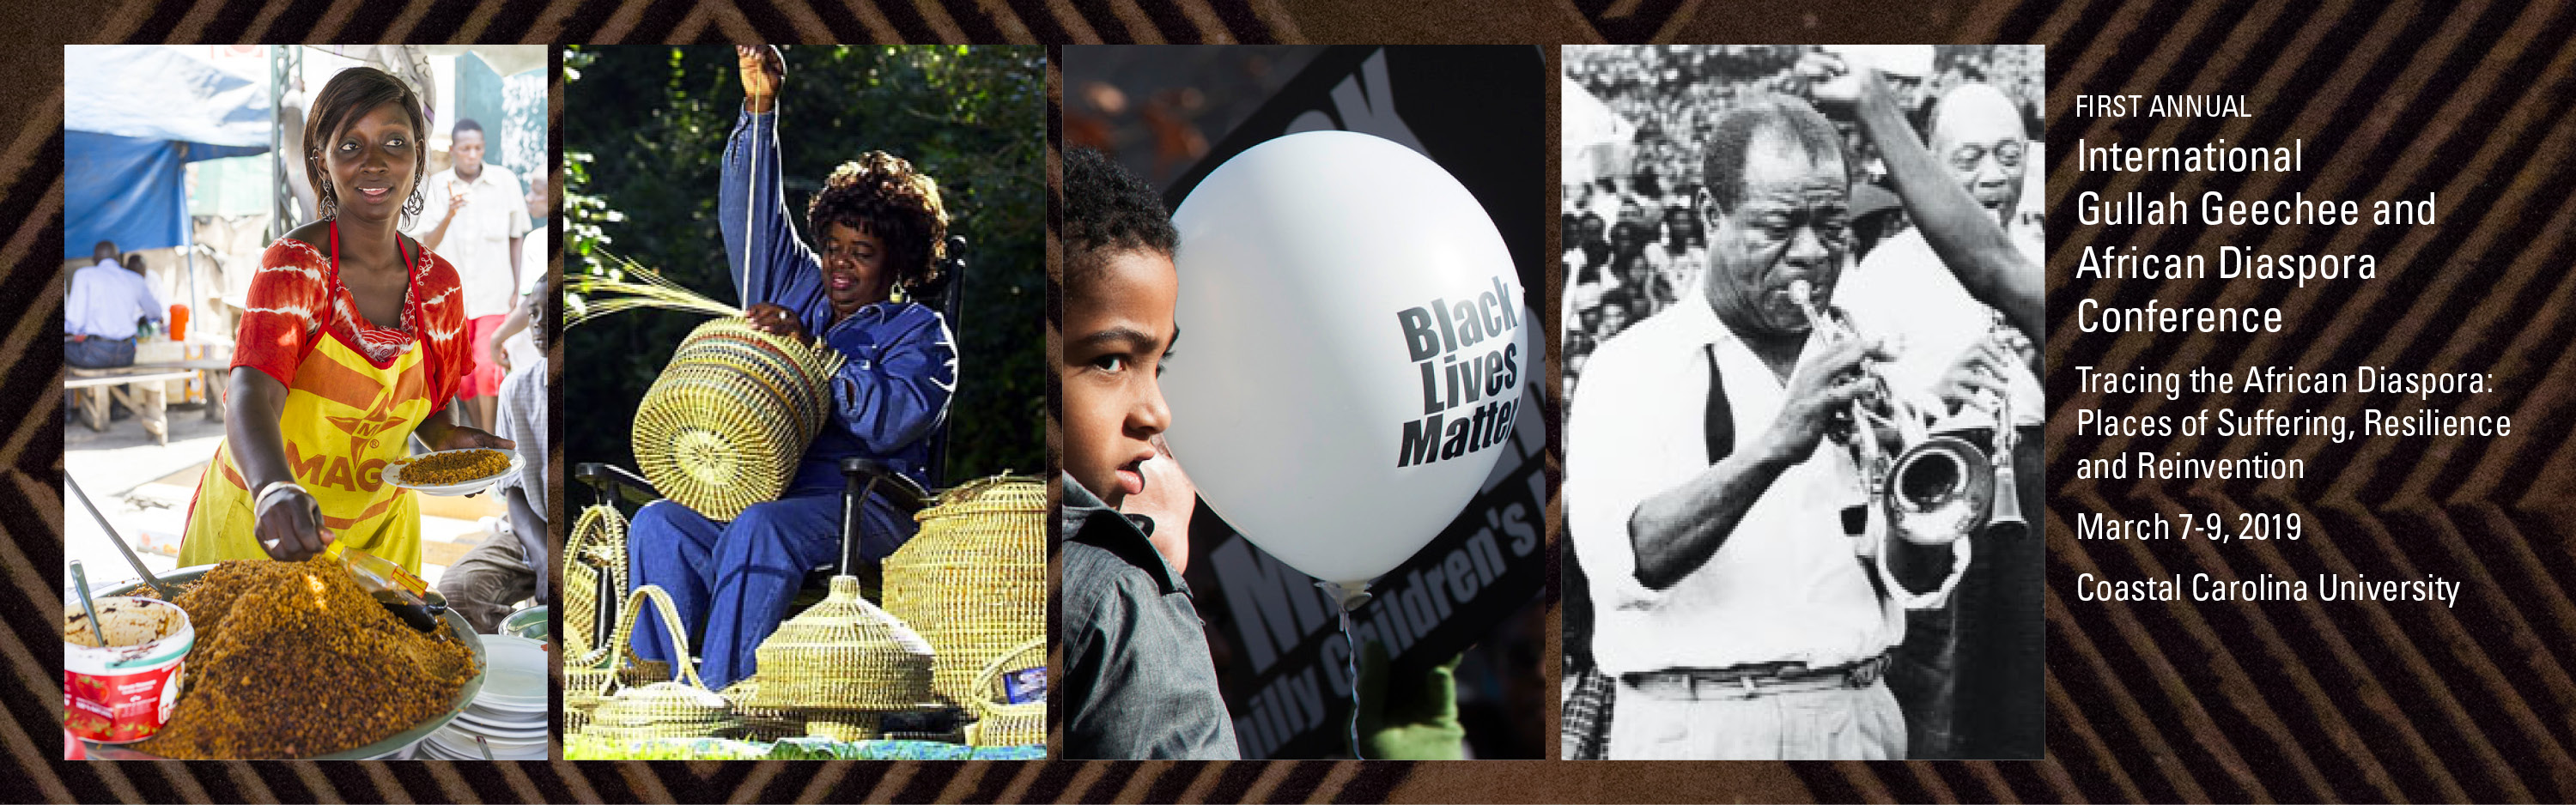 Series of images for African Diaspora, Ghanian woman cooking, Gullah woman weaving baskets, African American child with Black Lives Matter Balloon and Louis Armstrong on his trip to Africa.